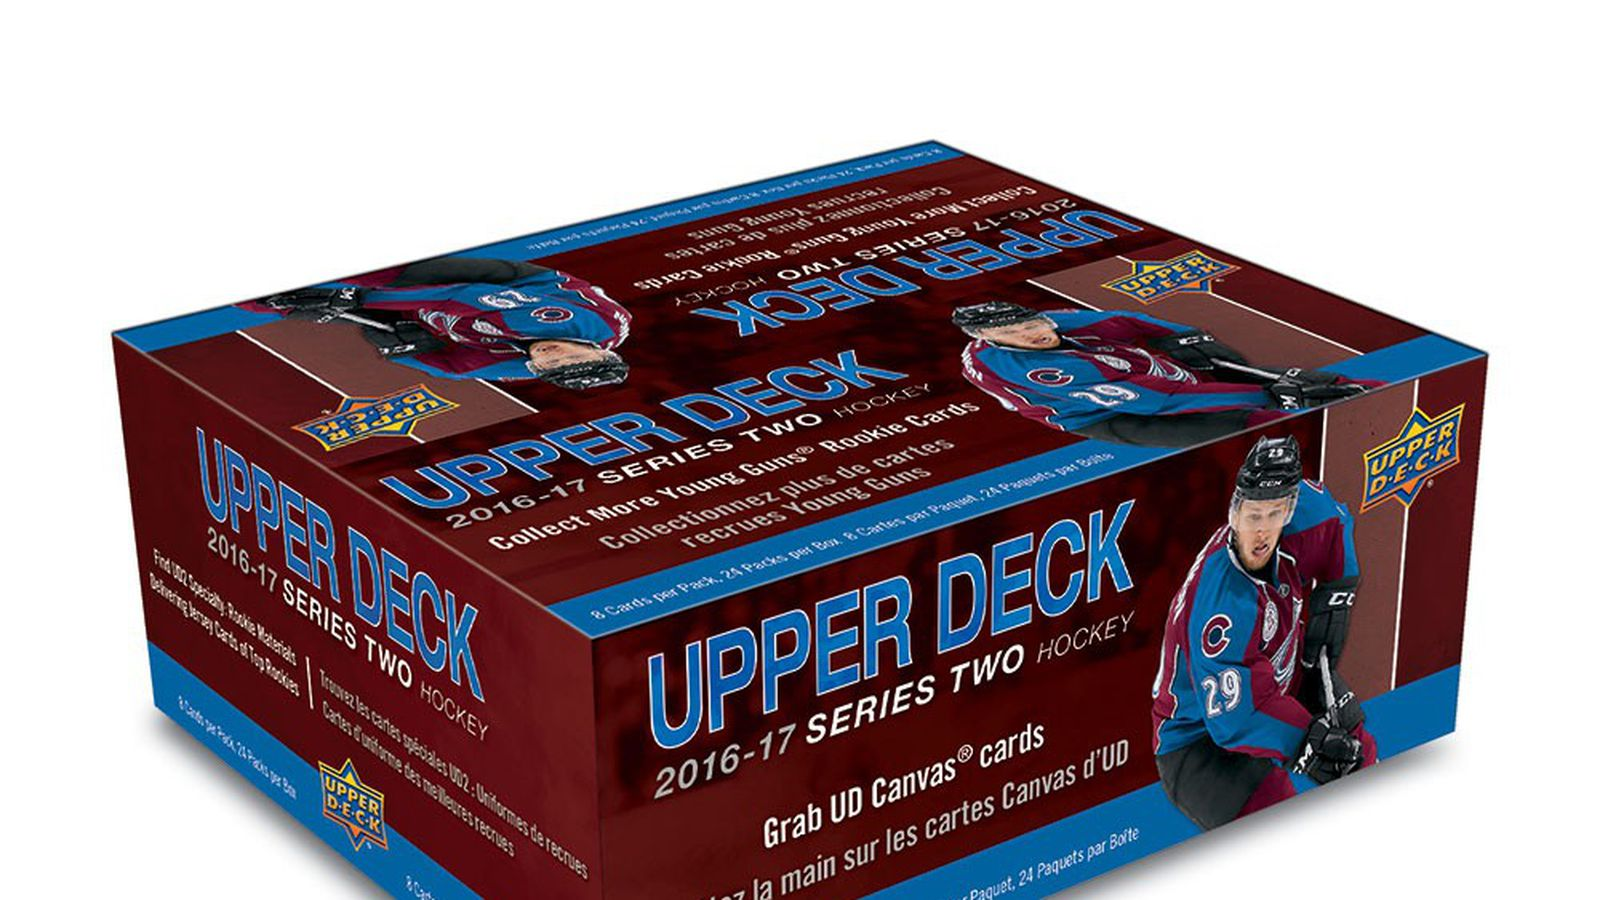 Upper_deck_series_2.0